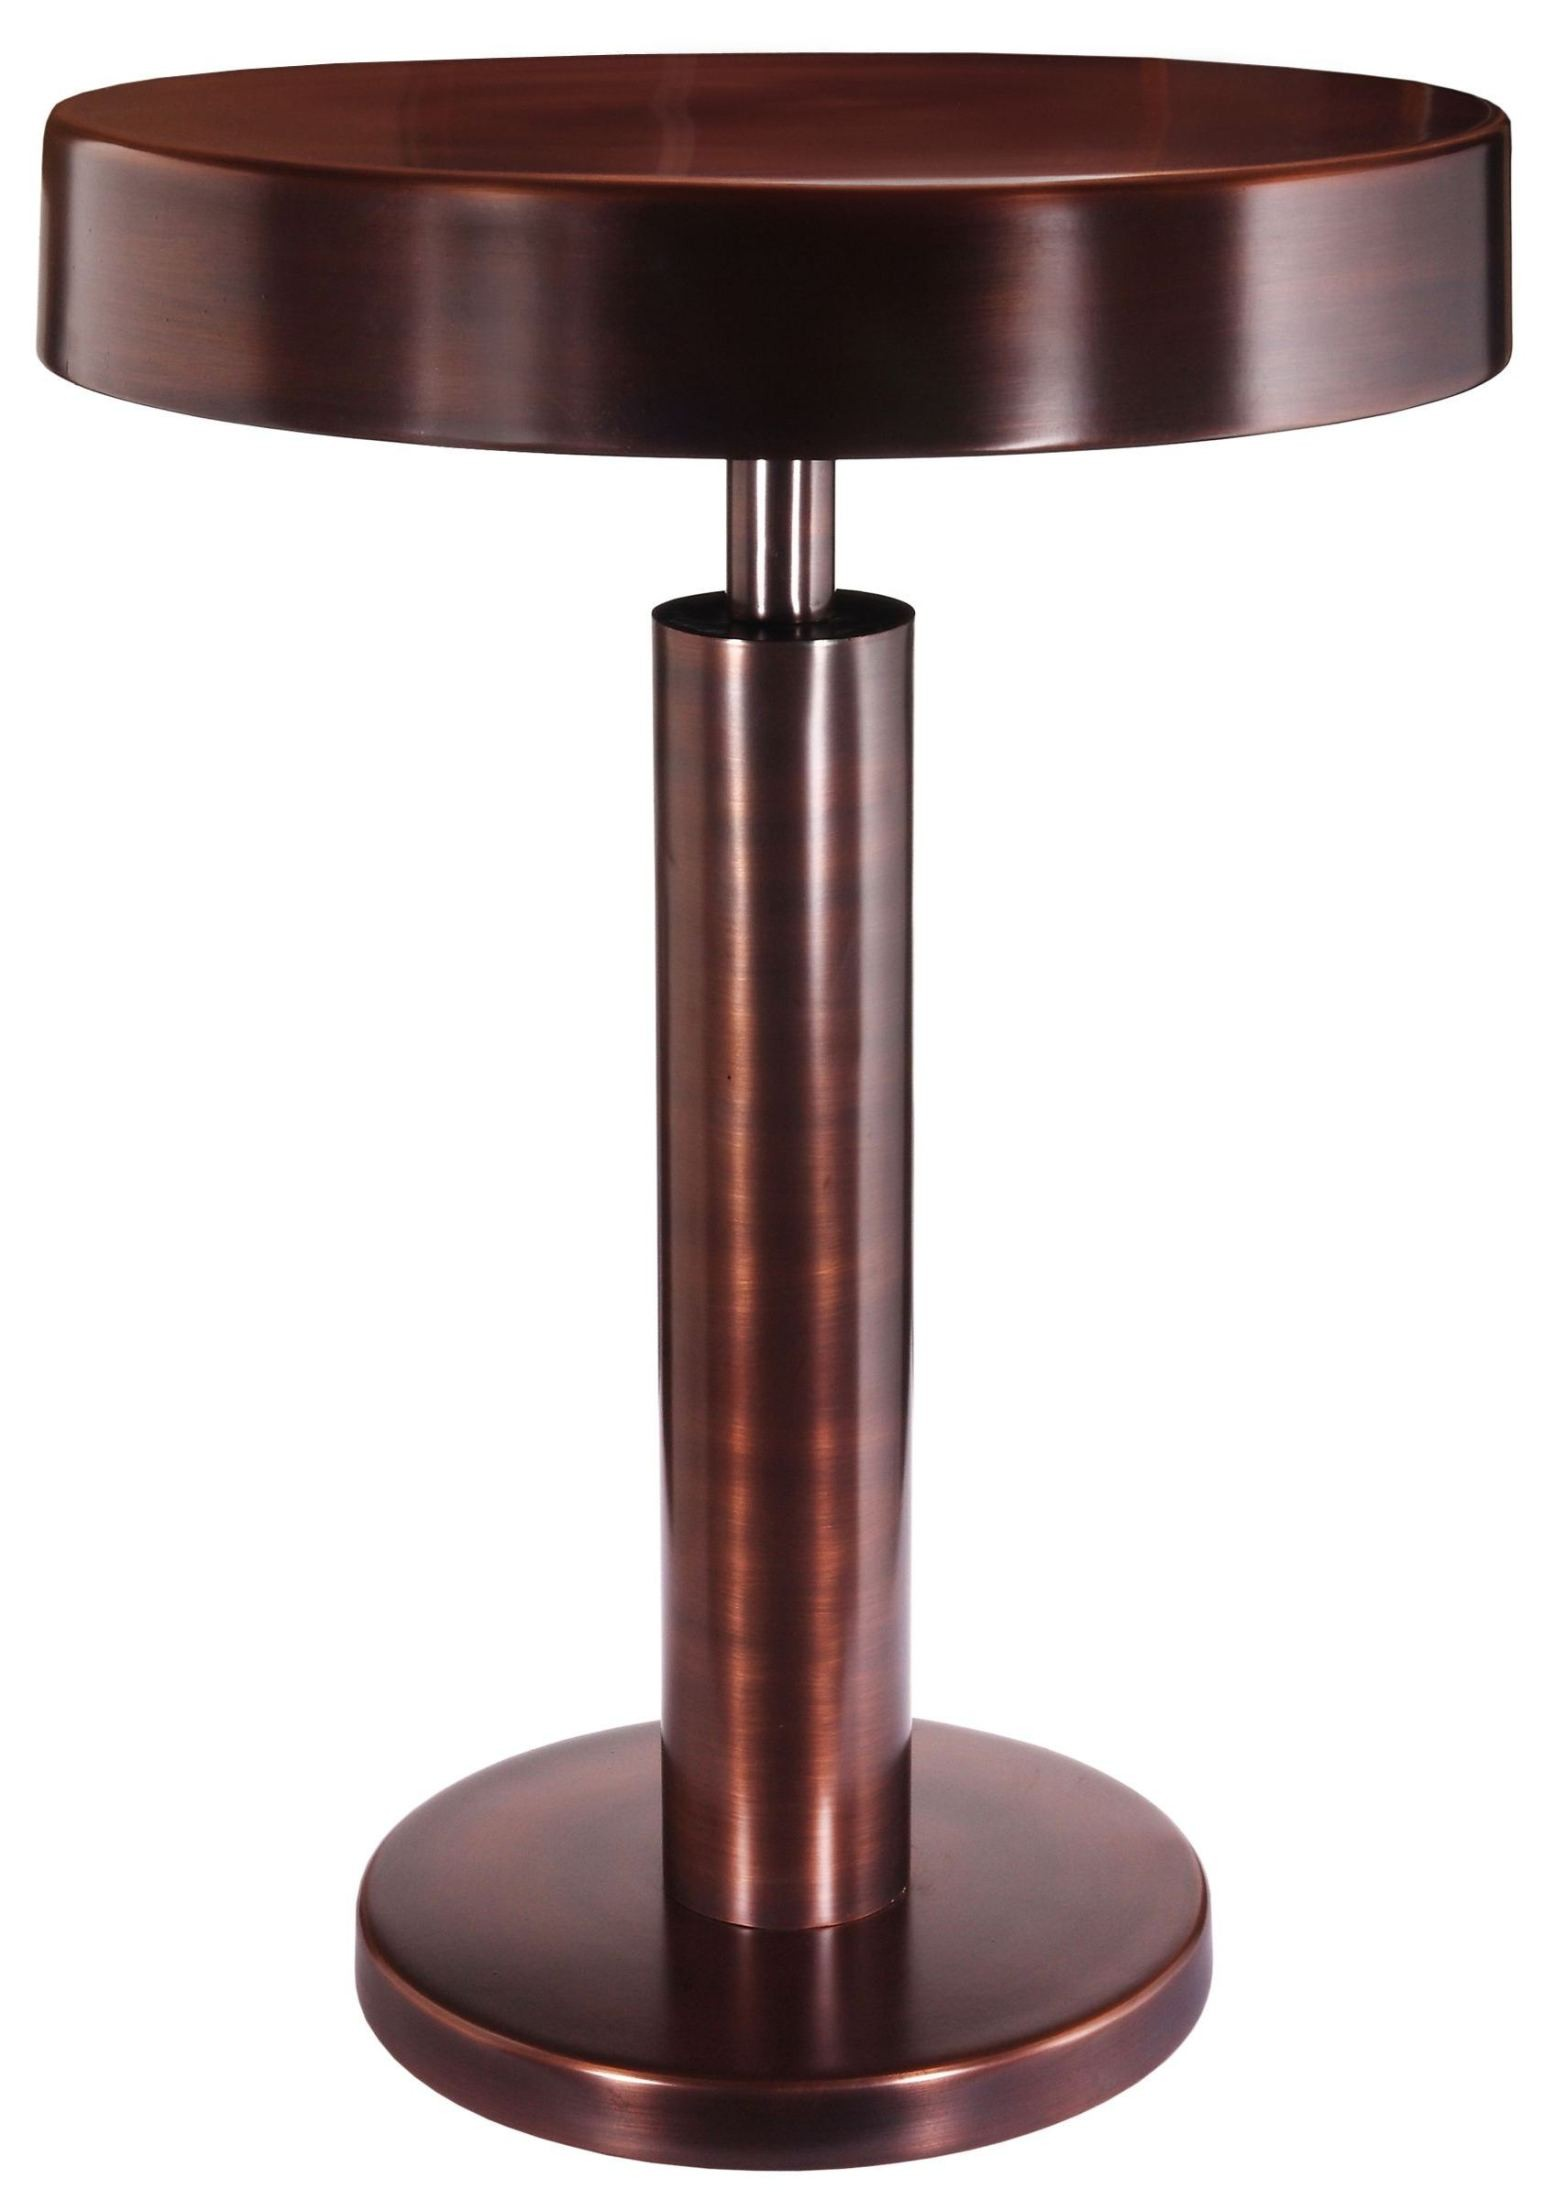 farm end table copper furniture hand hammered rustic design oak altair antique accent kenroy home drum target mirror vanity chair navy bedside high side black glass nest tables